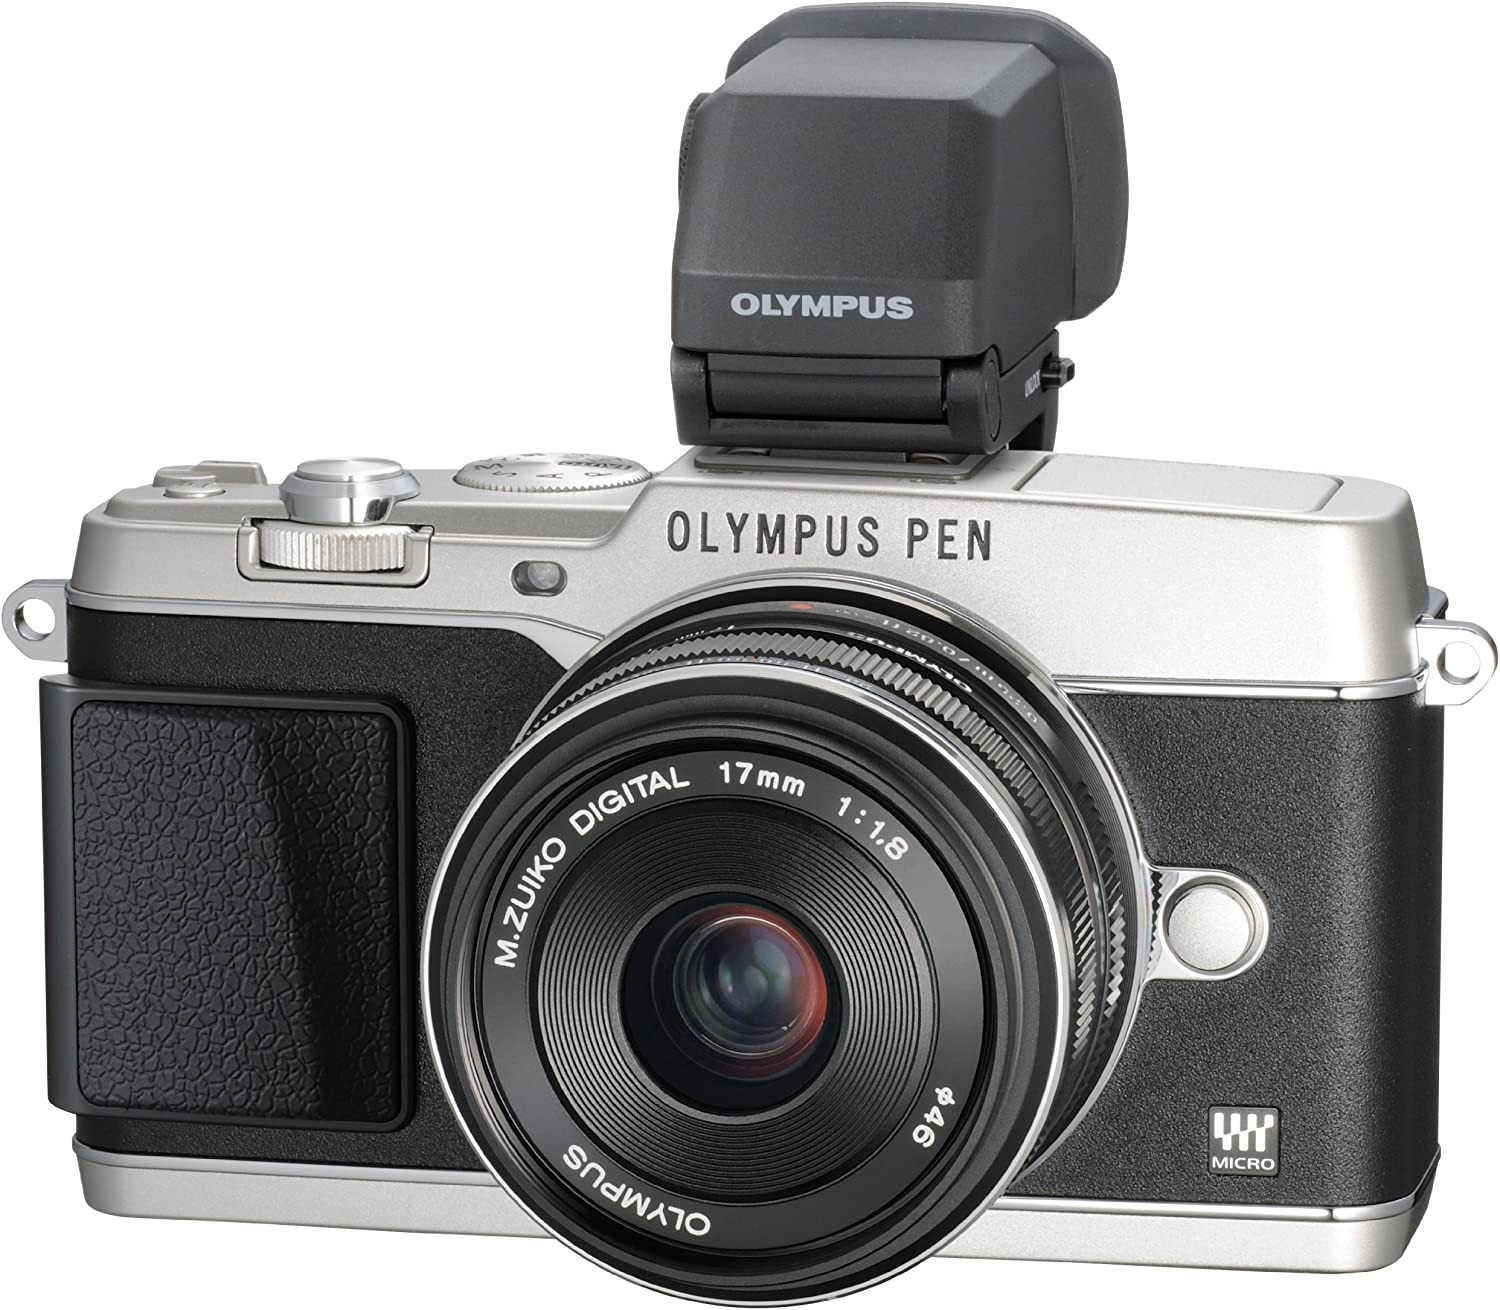 Amazon Com Olympus E P5 16 1 Mp Mirrorless Digital Camera With 3 Inch Lcd And 17mm F 1 8 Lens Silver With Black Trim Compact System Digital Cameras Camera Photo